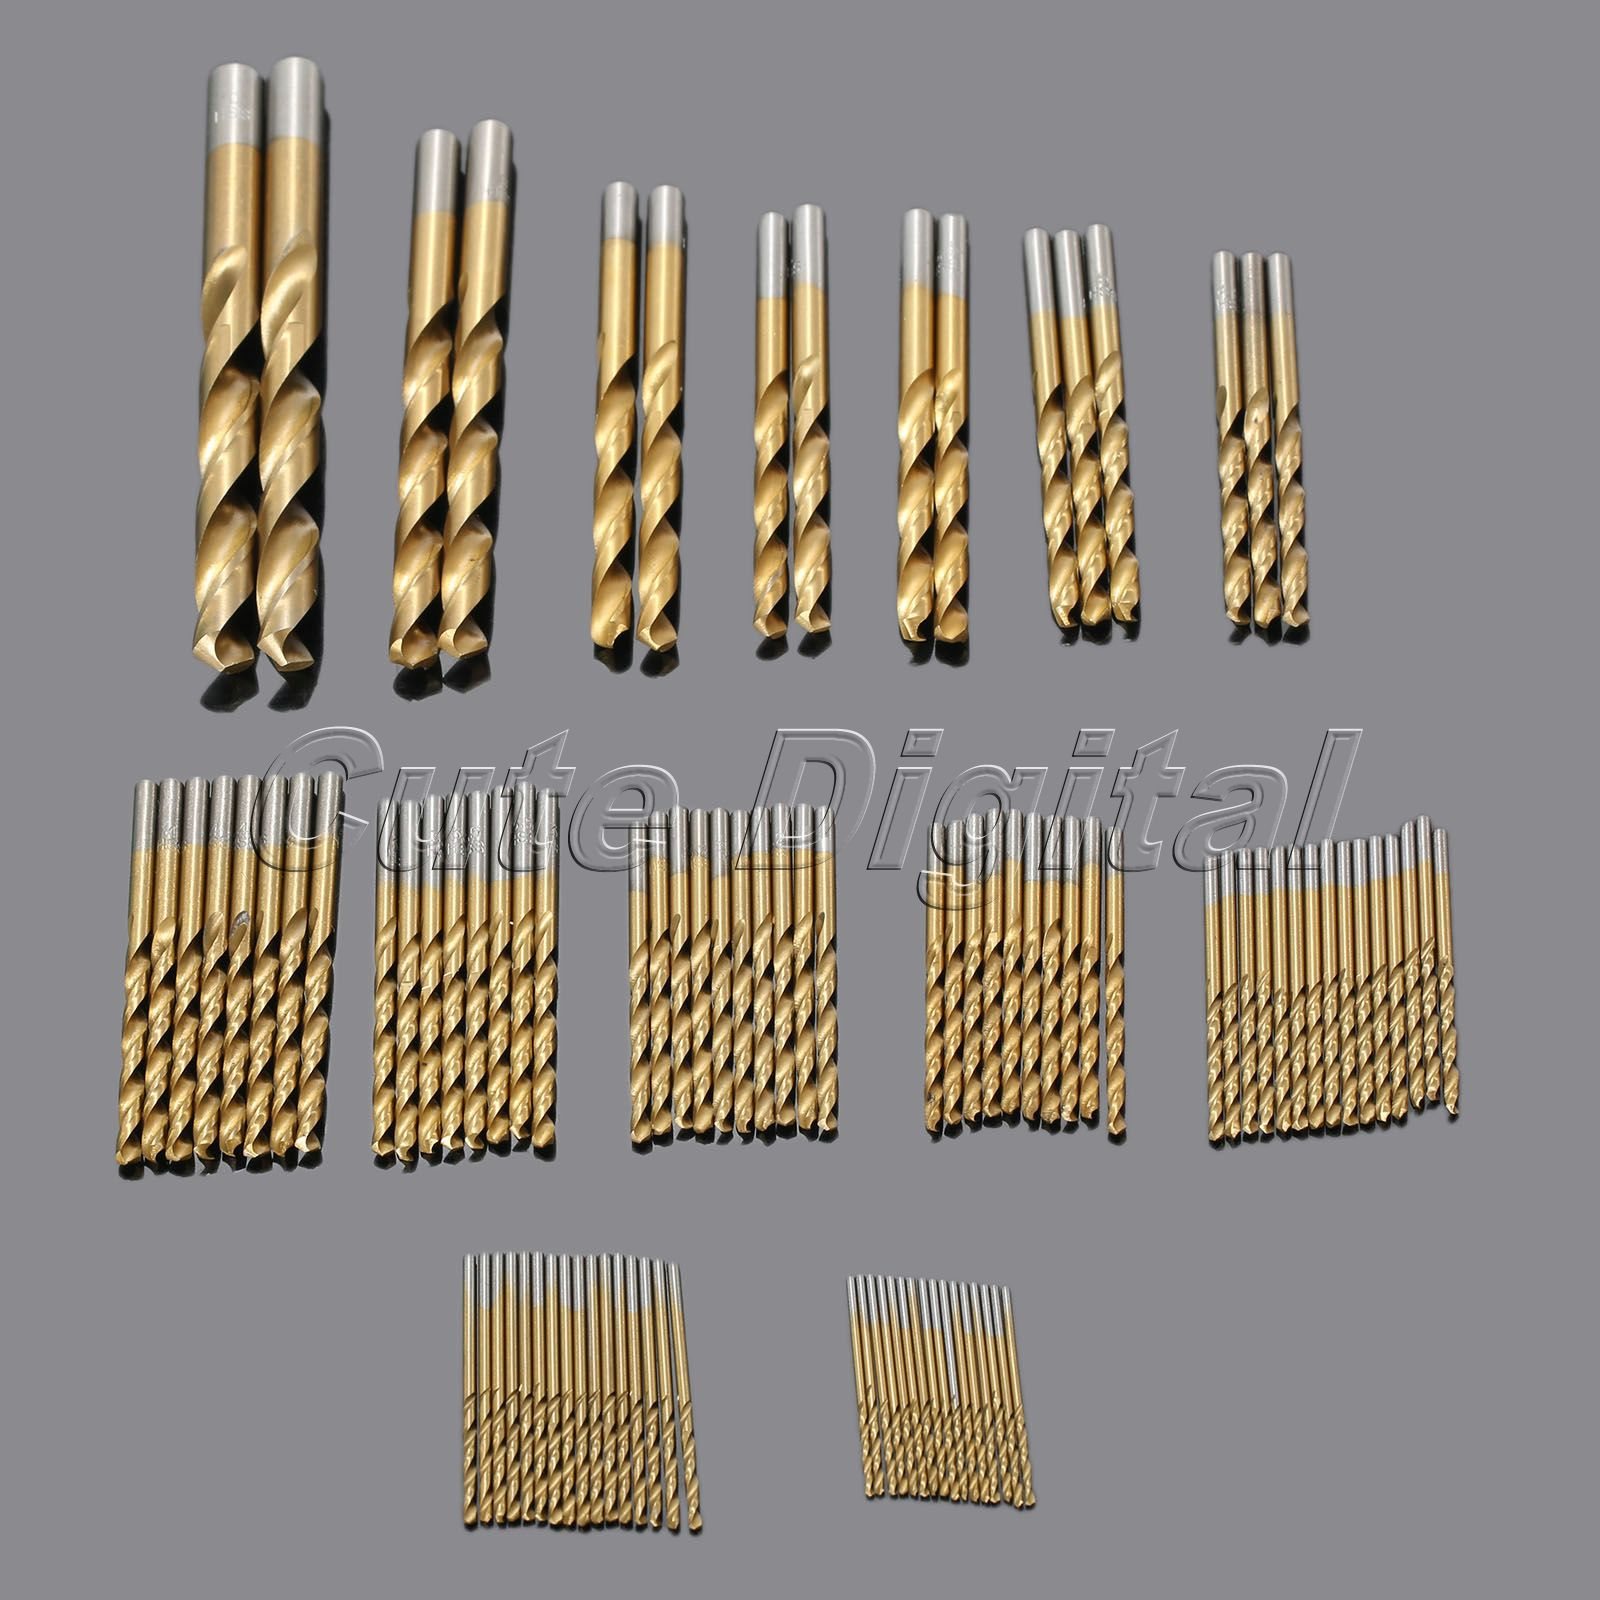 99pcs/set Titanium Coated HSS Twist Drill Bit Set High Speed Steel Drill Woodworking Power Tools Drill Accessories 1.5mm-10mm 99pcs mayitr hss drill bits set titanium coated woodworking drilling tools 1 5mm 10mm